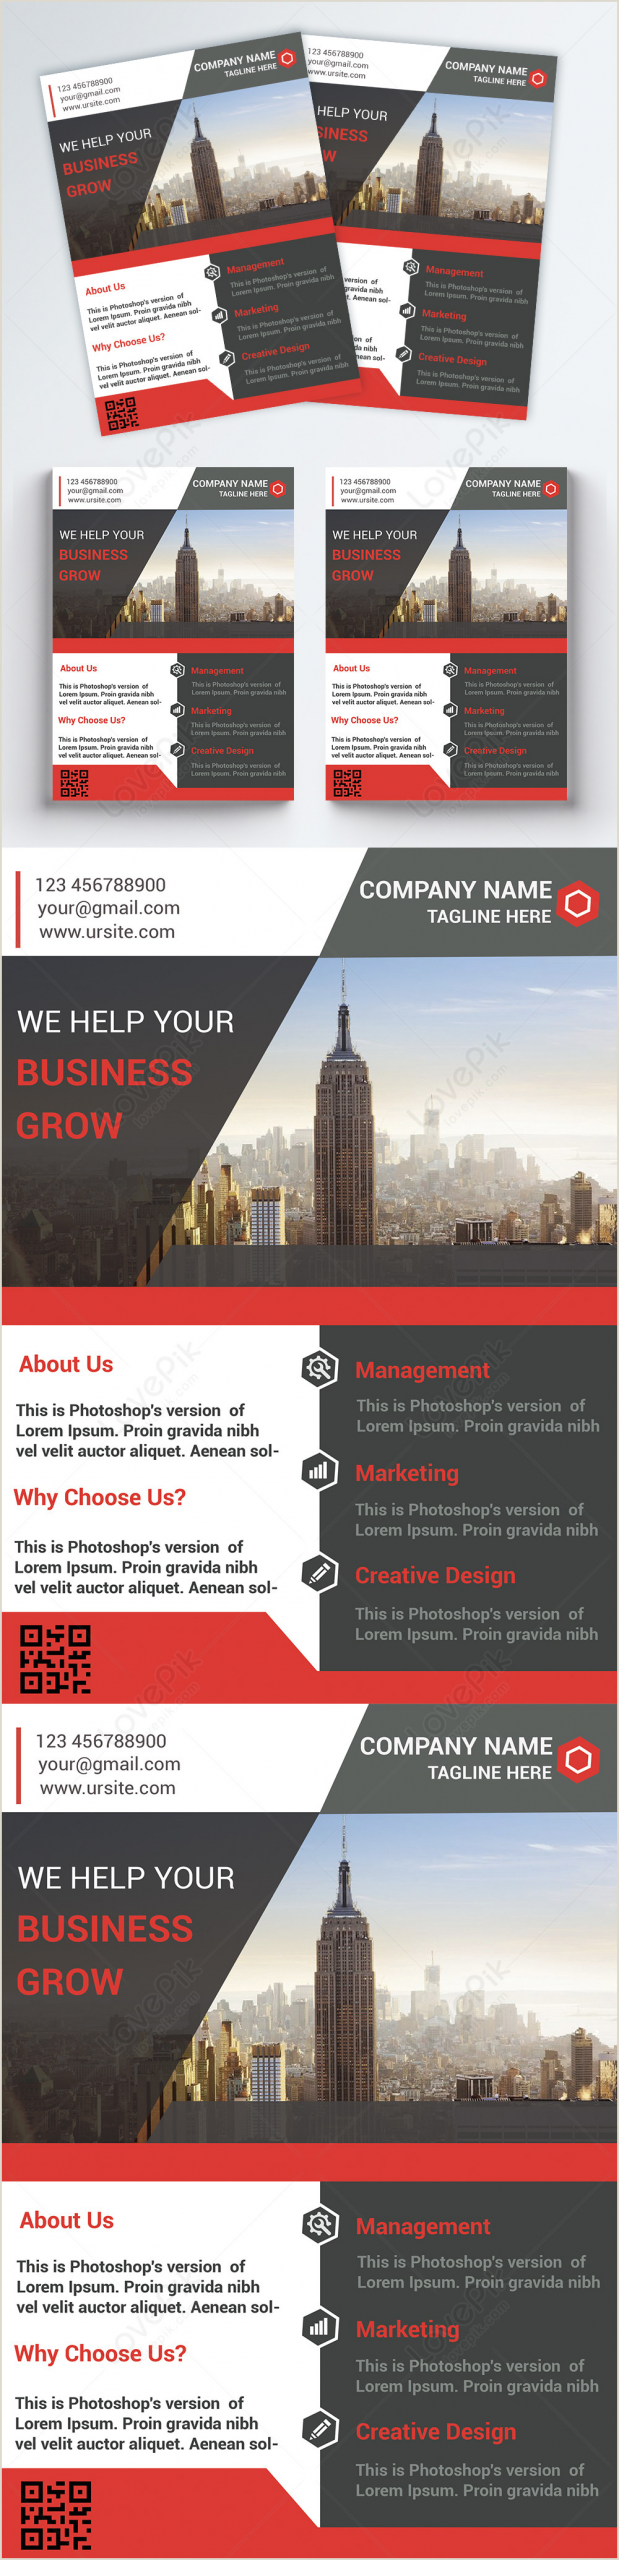 Buisness Card Template Creative Honey Business Flyer Template Image Picture Free